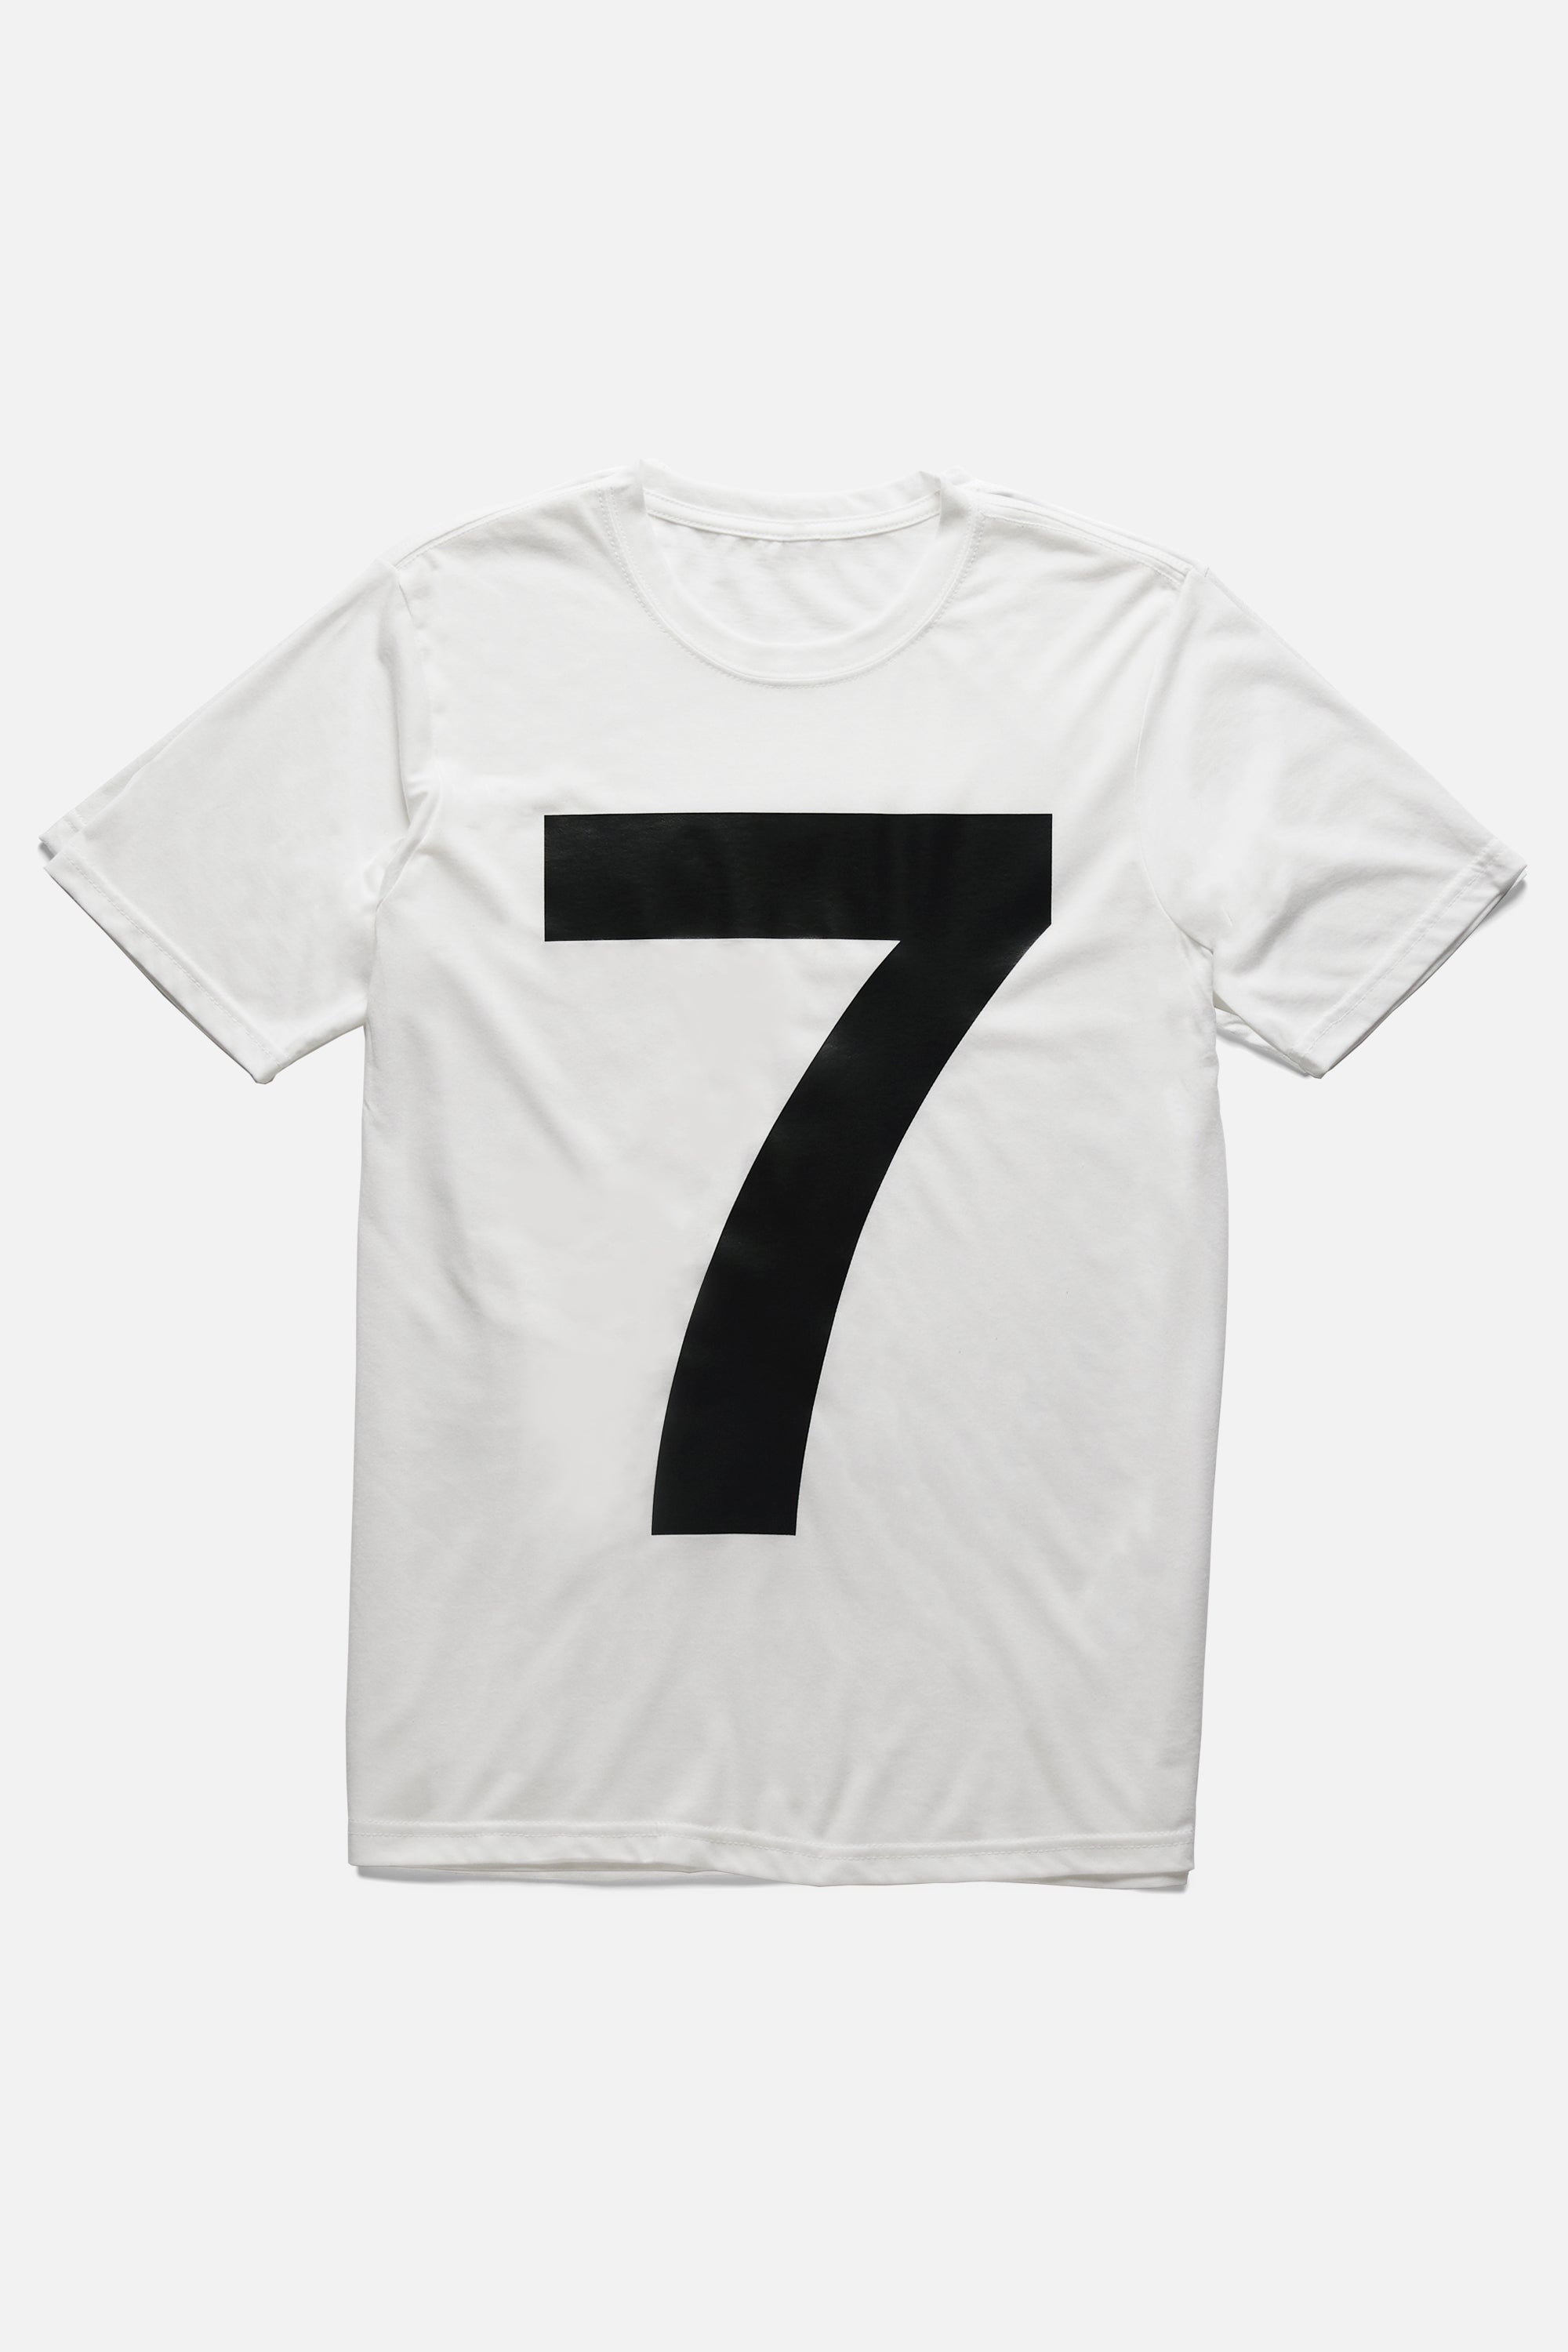 Oversized number 7 on mens white tee - Helvetica seven t-shirt.